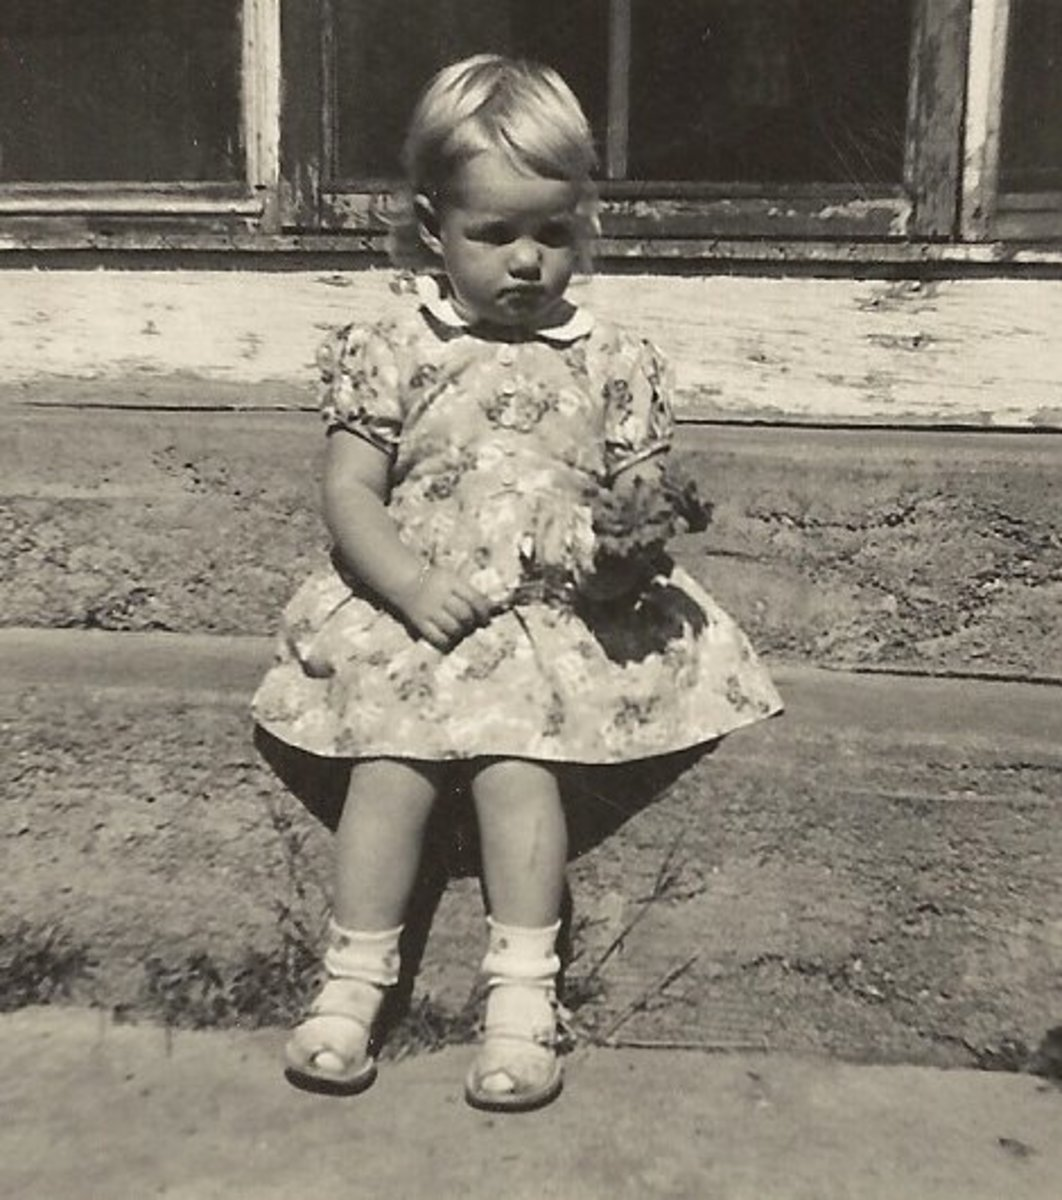 Here I am as a toddler. There are many family stories I should record from that time in my life.